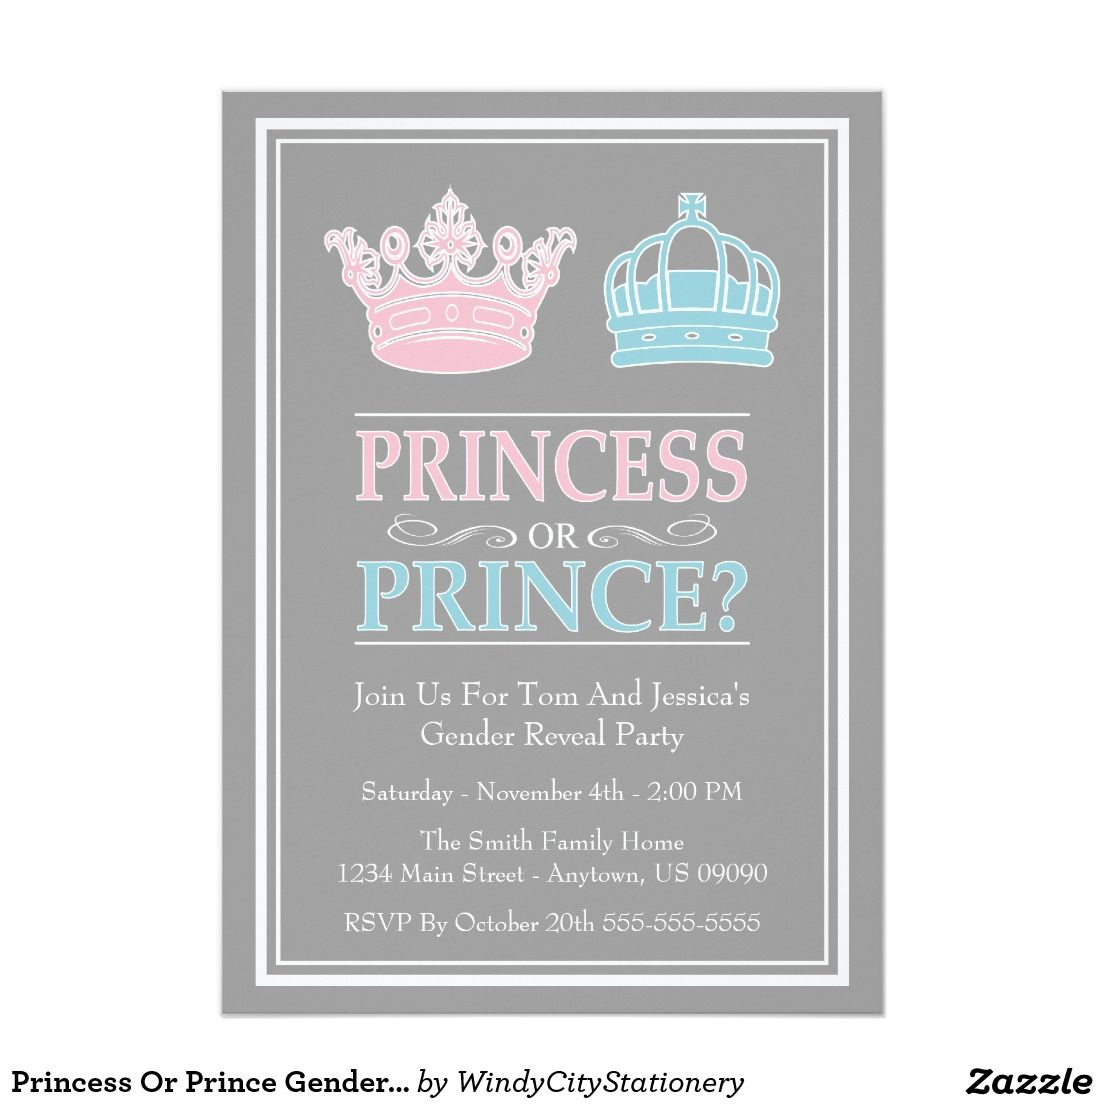 princess or prince gender reveal party invitations | princesses, Party invitations